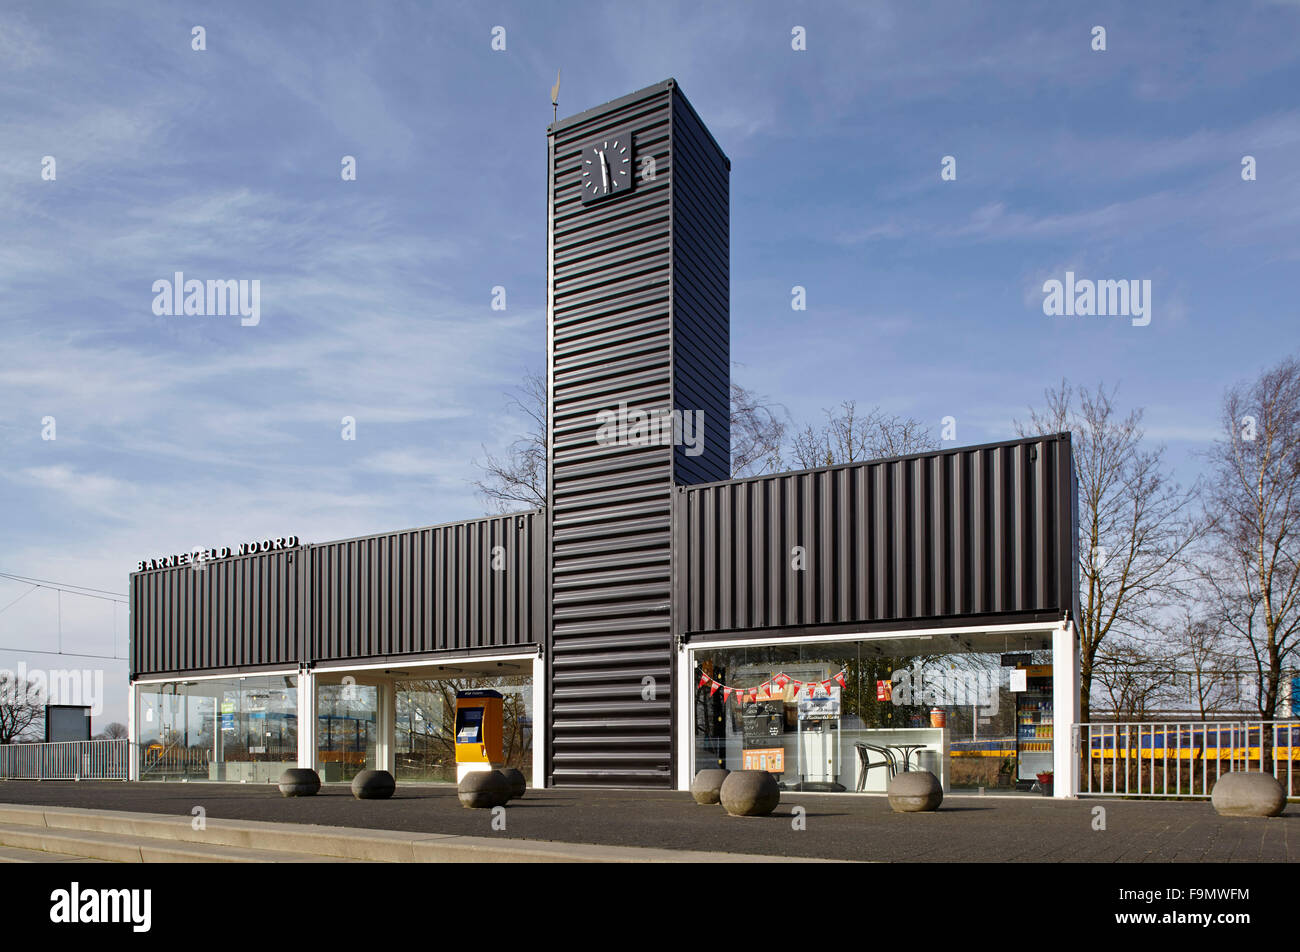 Barneveld Noord Station, a striking building with a central tower and large glass wall panels, creating a cross - Stock Image